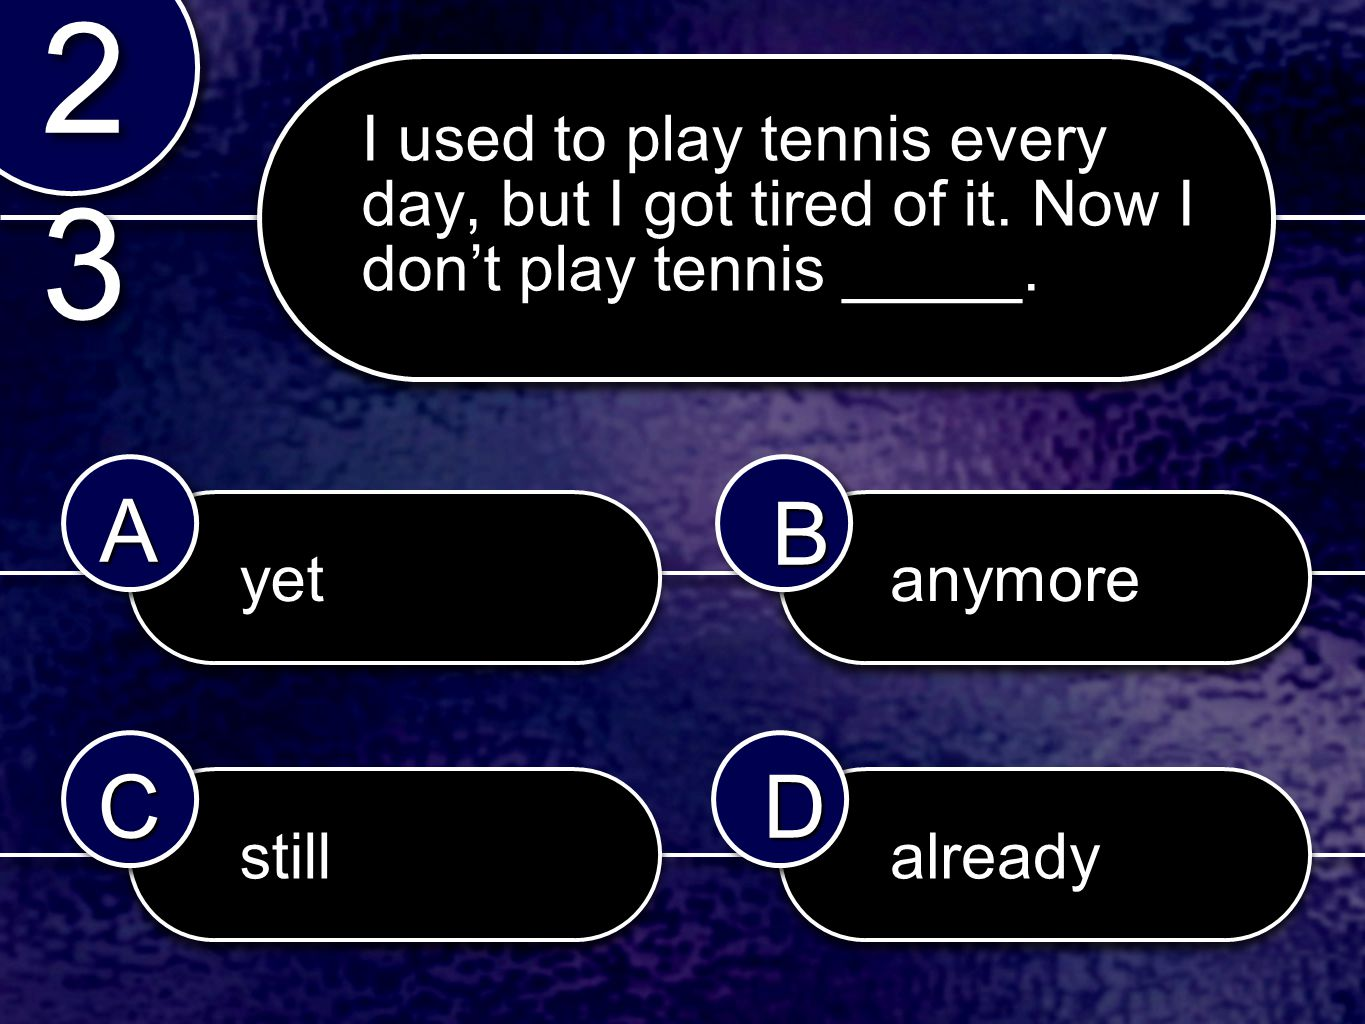 yetyetanymoreanymore stillstillalreadyalready 2323 2323 AABB CCDD I used to play tennis every day, but I got tired of it.